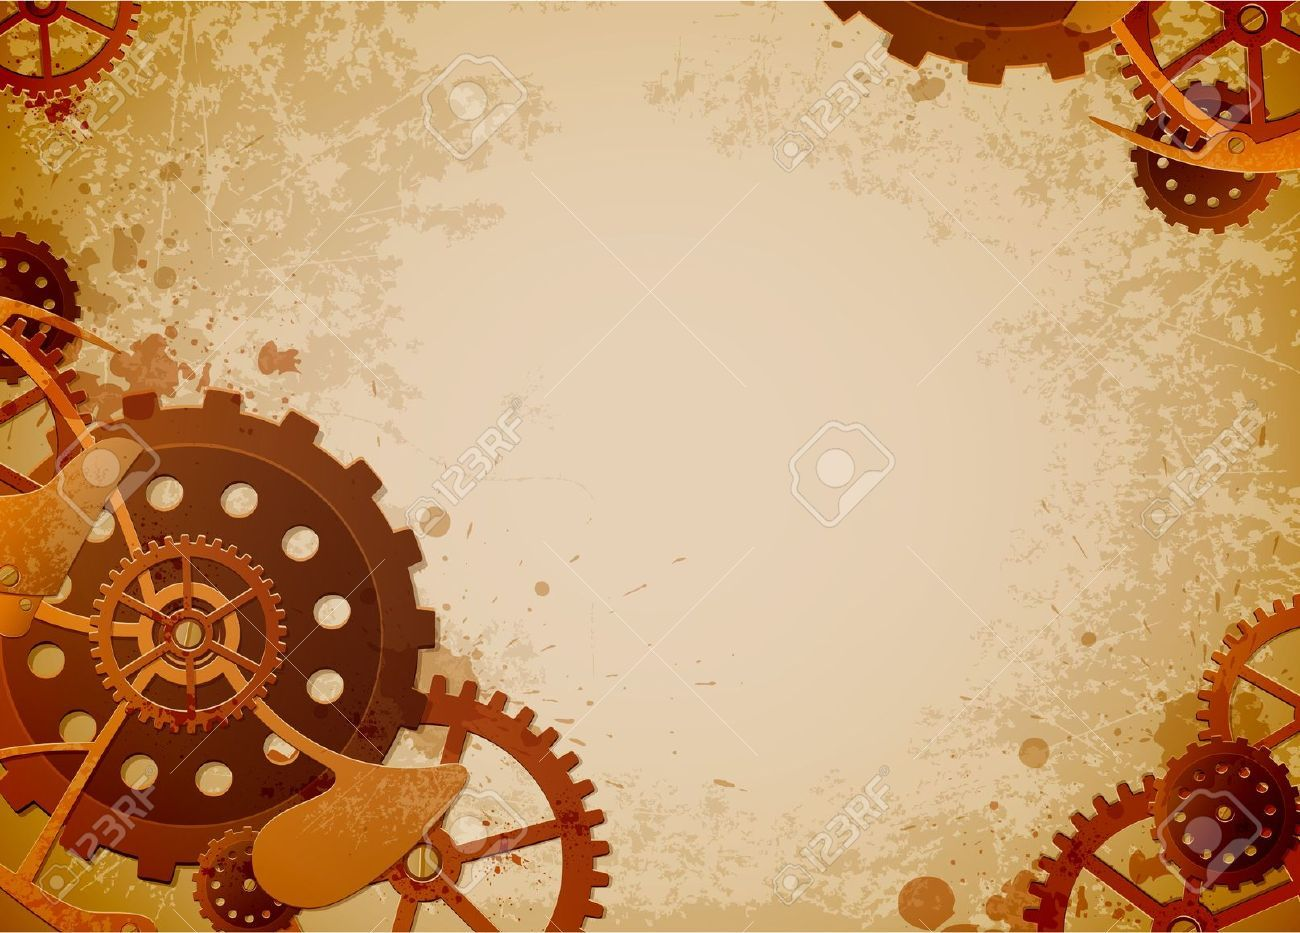 Steampunk clipart royalty free. Stock illustrations cliparts and